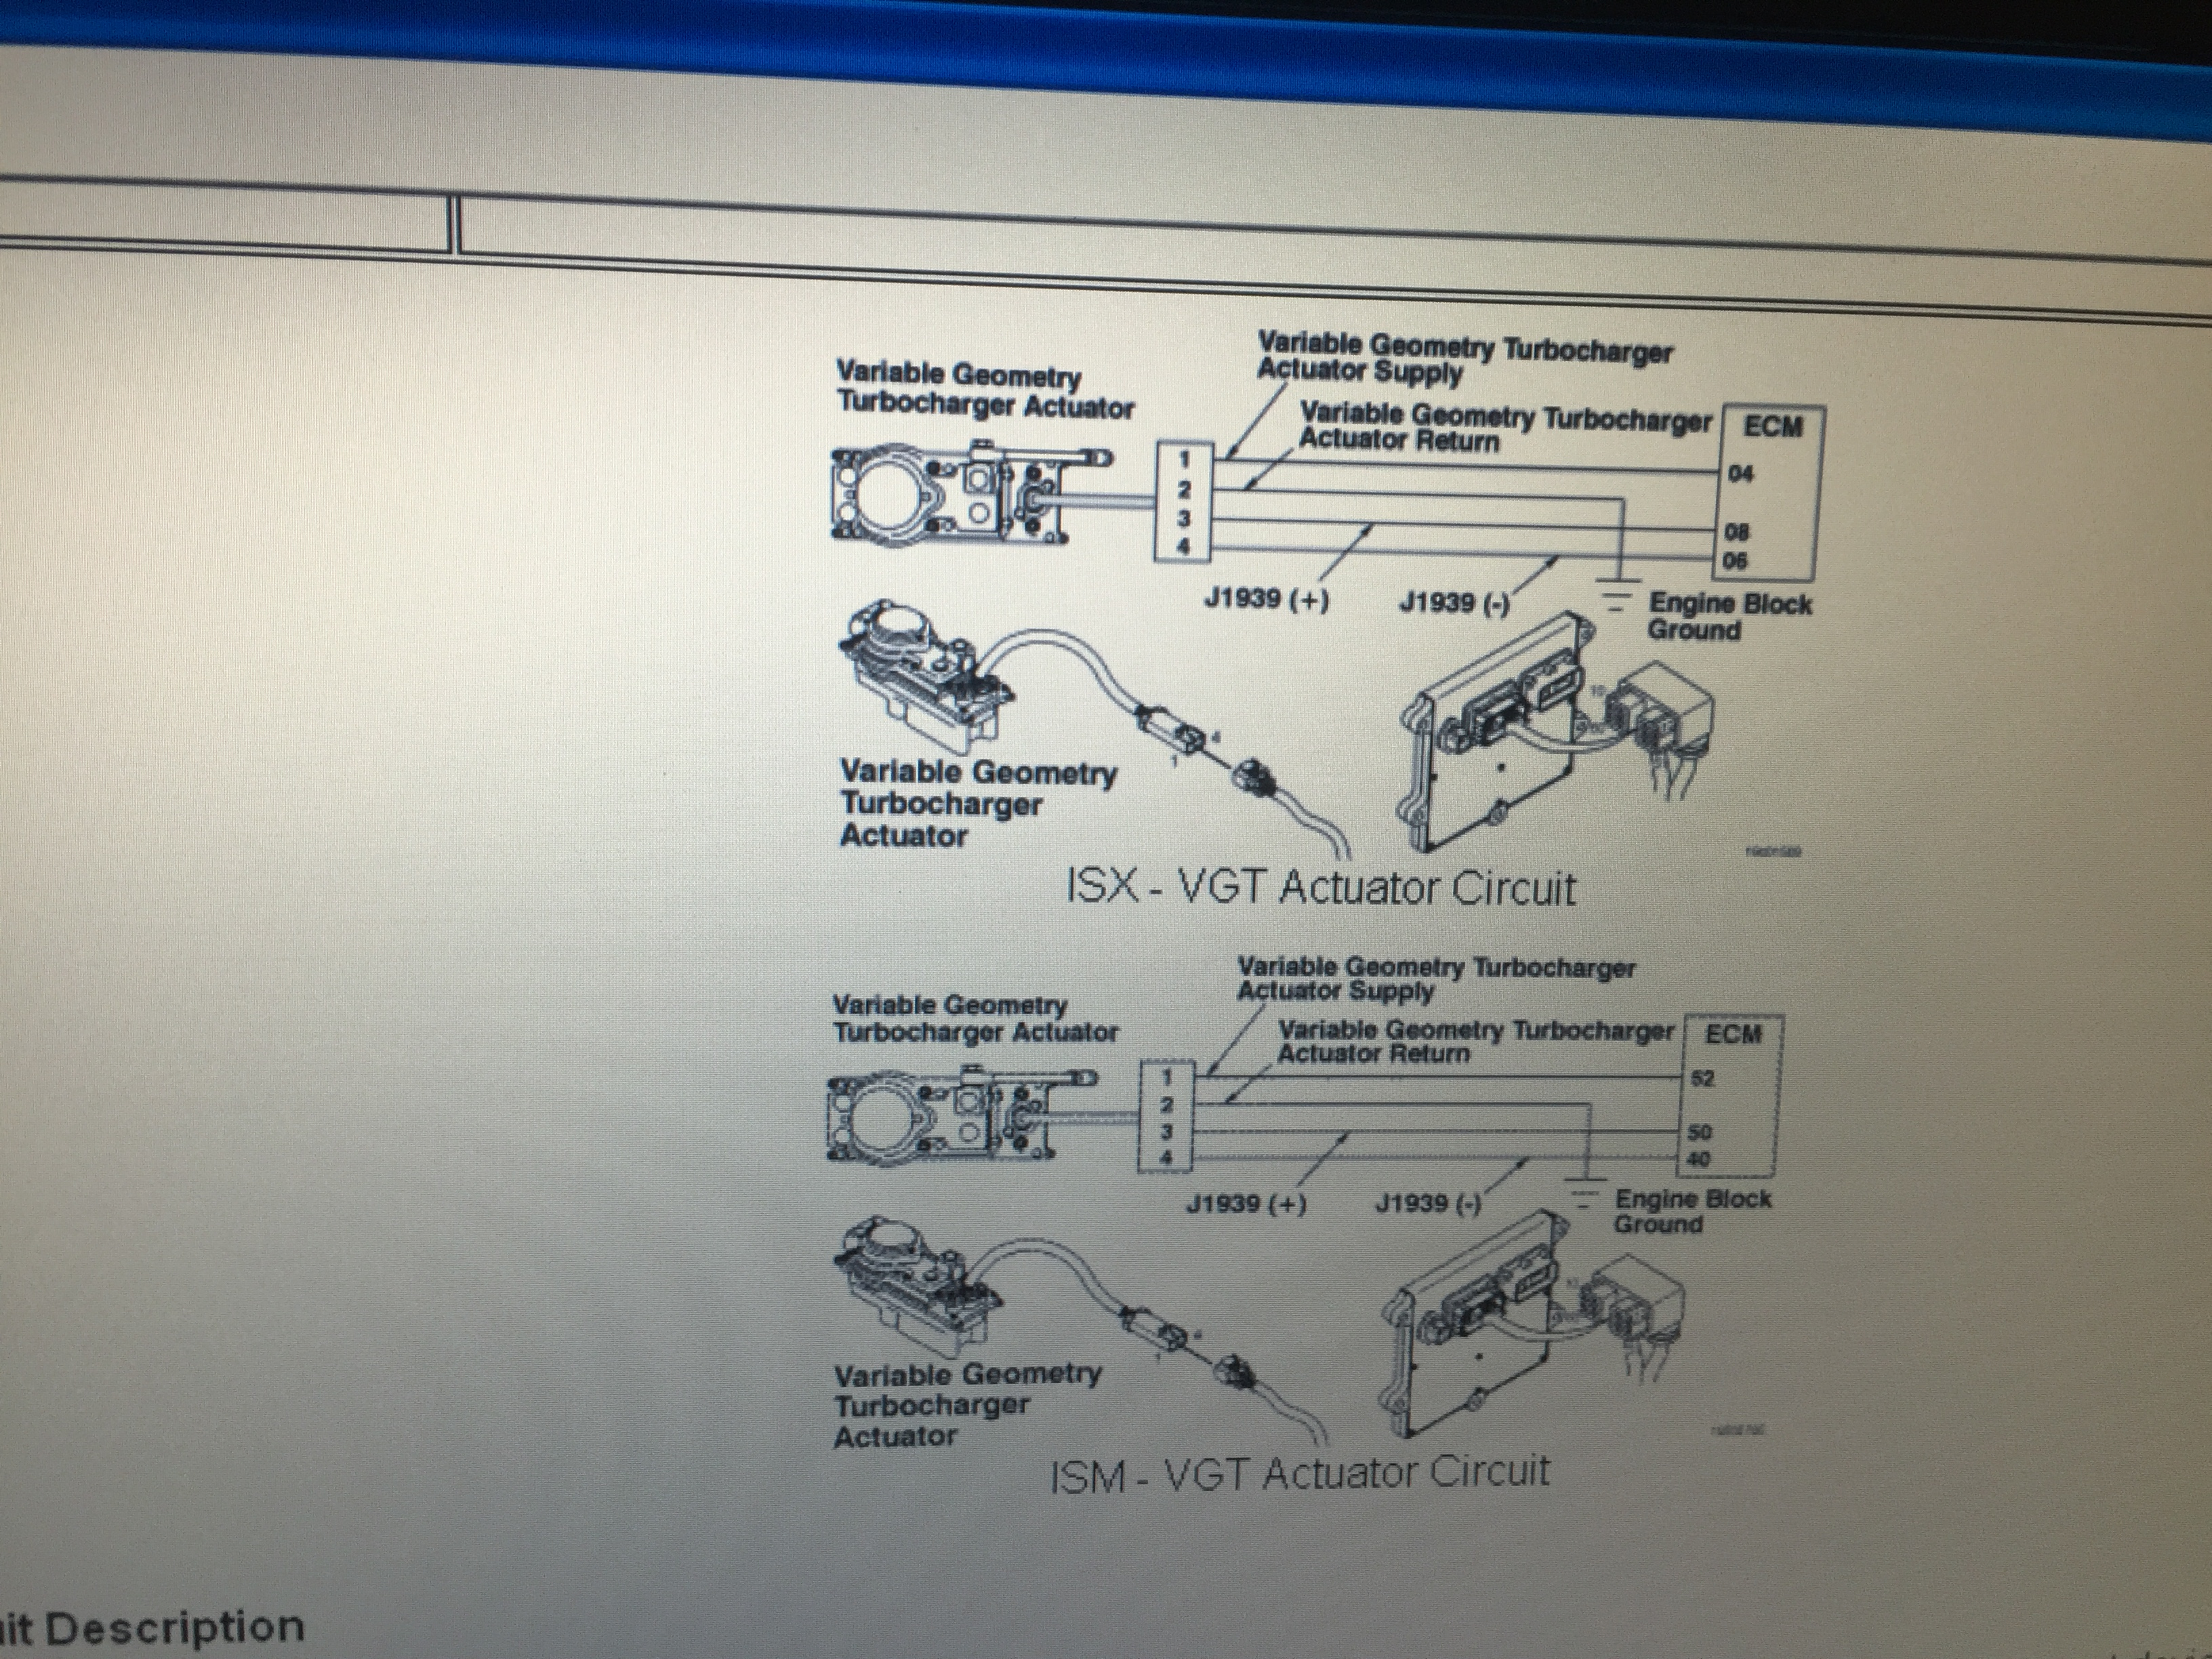 D5877E9 Vgt Actuator Wiring Diagram | Wiring Resources on